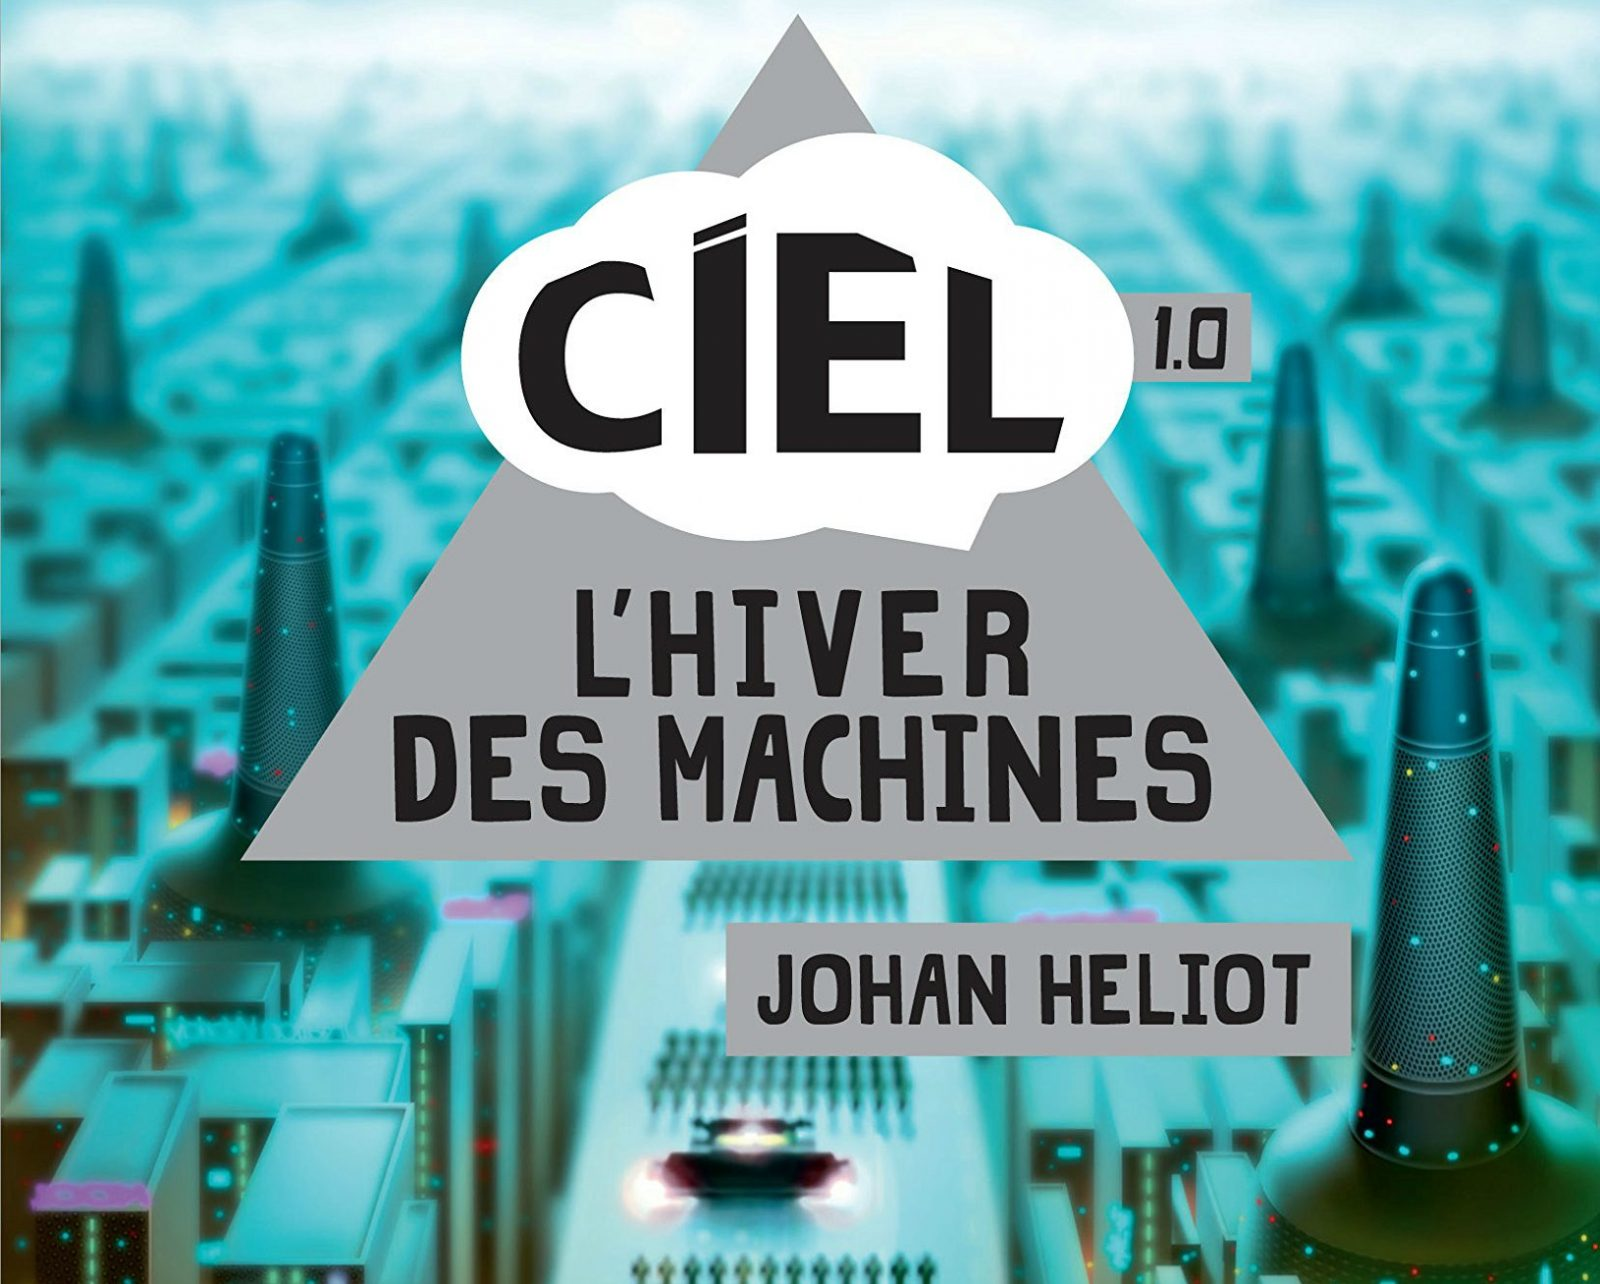 CIEL : Une excellente série de science-fiction